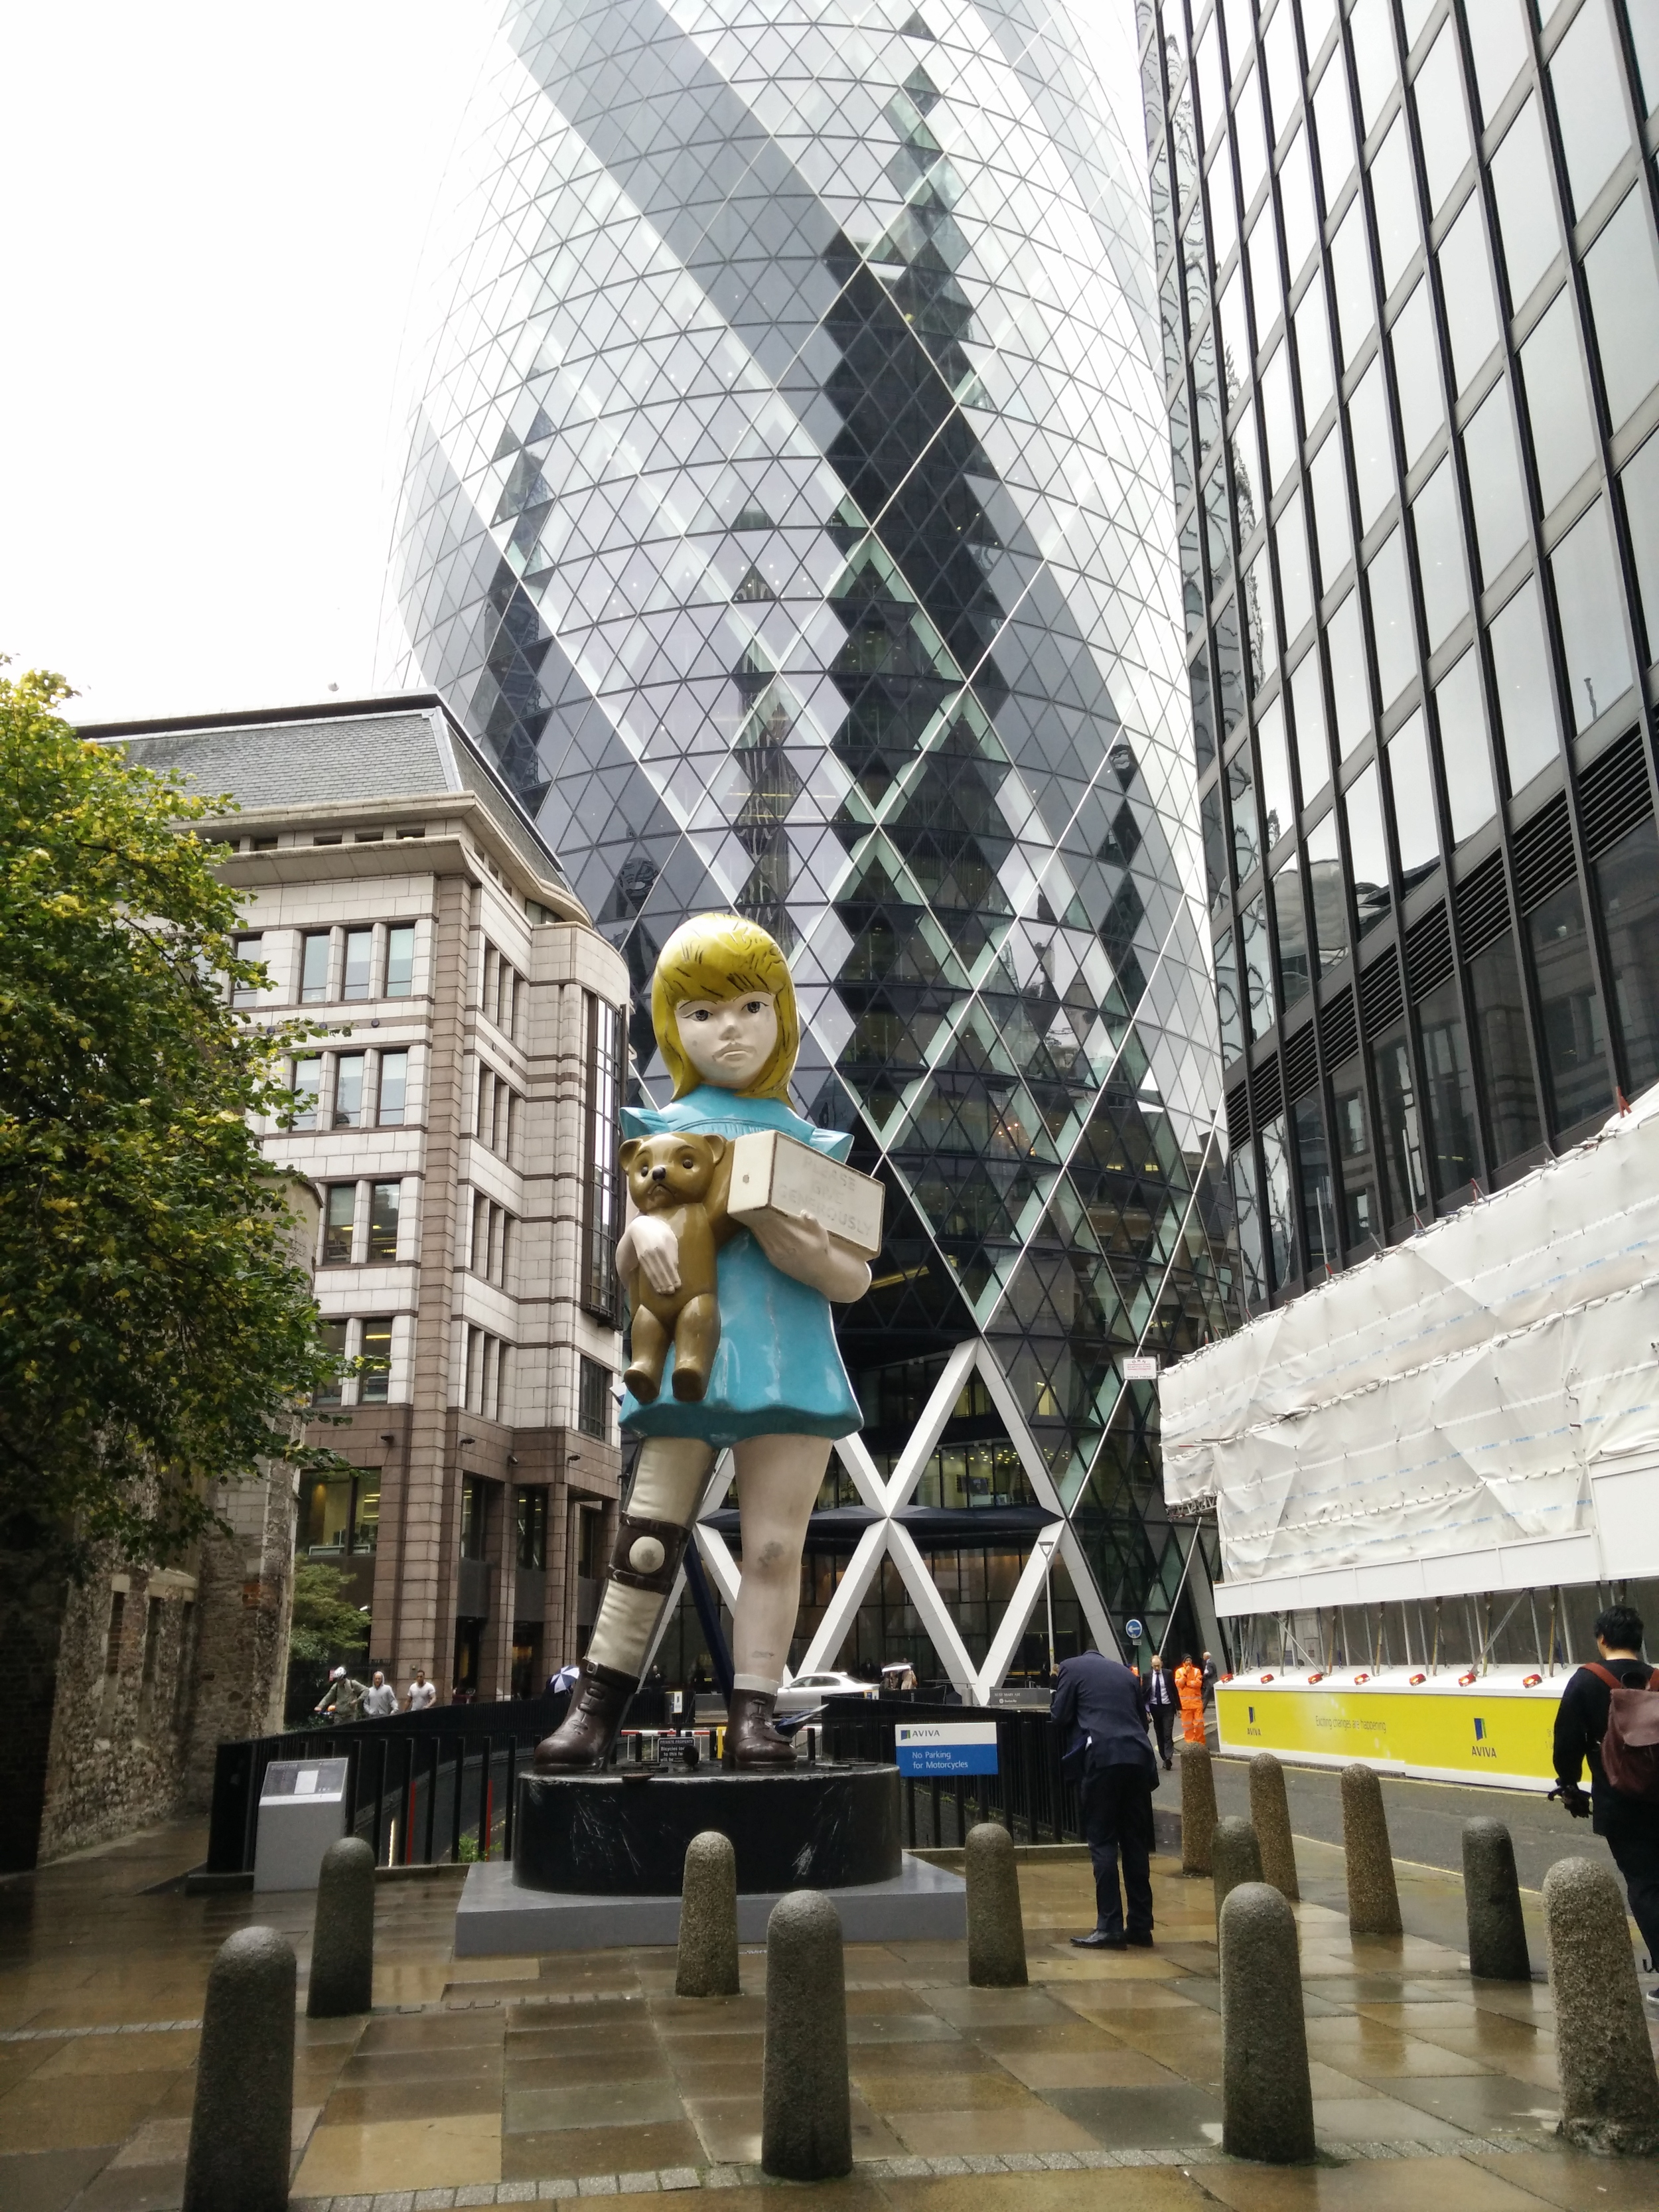 Damien Hirst's Charity  works great against the background of the business district.